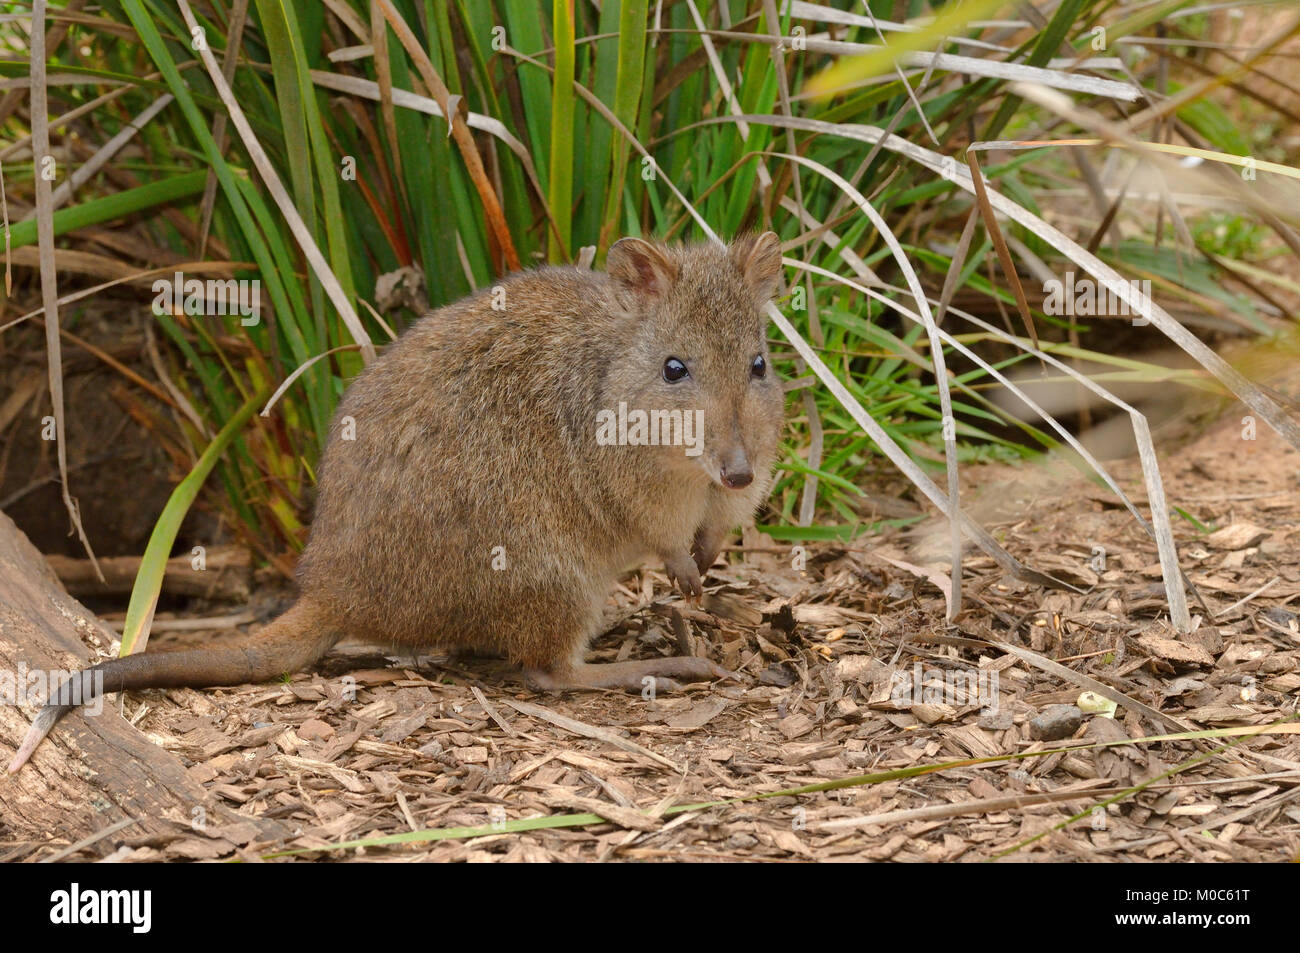 Long-nosed Potoroo Potorous tridactylus Photographed in Tasmania, Australia Stock Photo